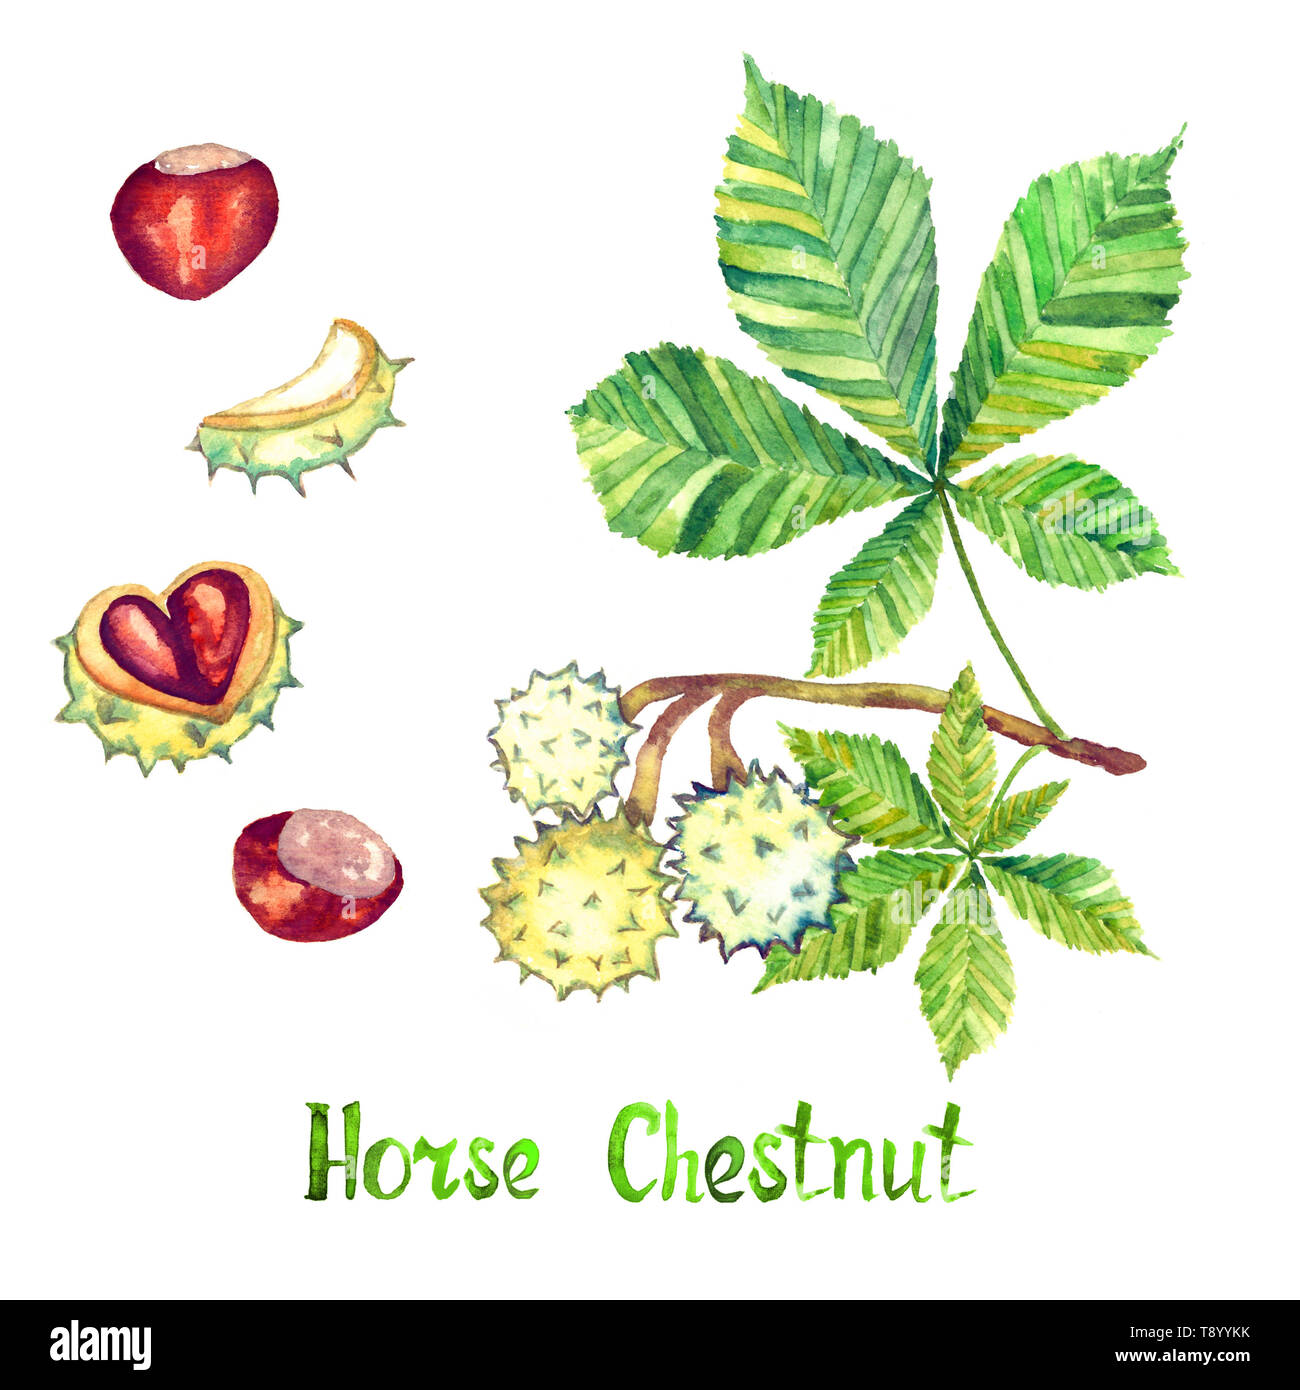 Horse Chestnut Leaves Seamless Texture Stock Vector - Illustration of  nature, repeating: 40645783